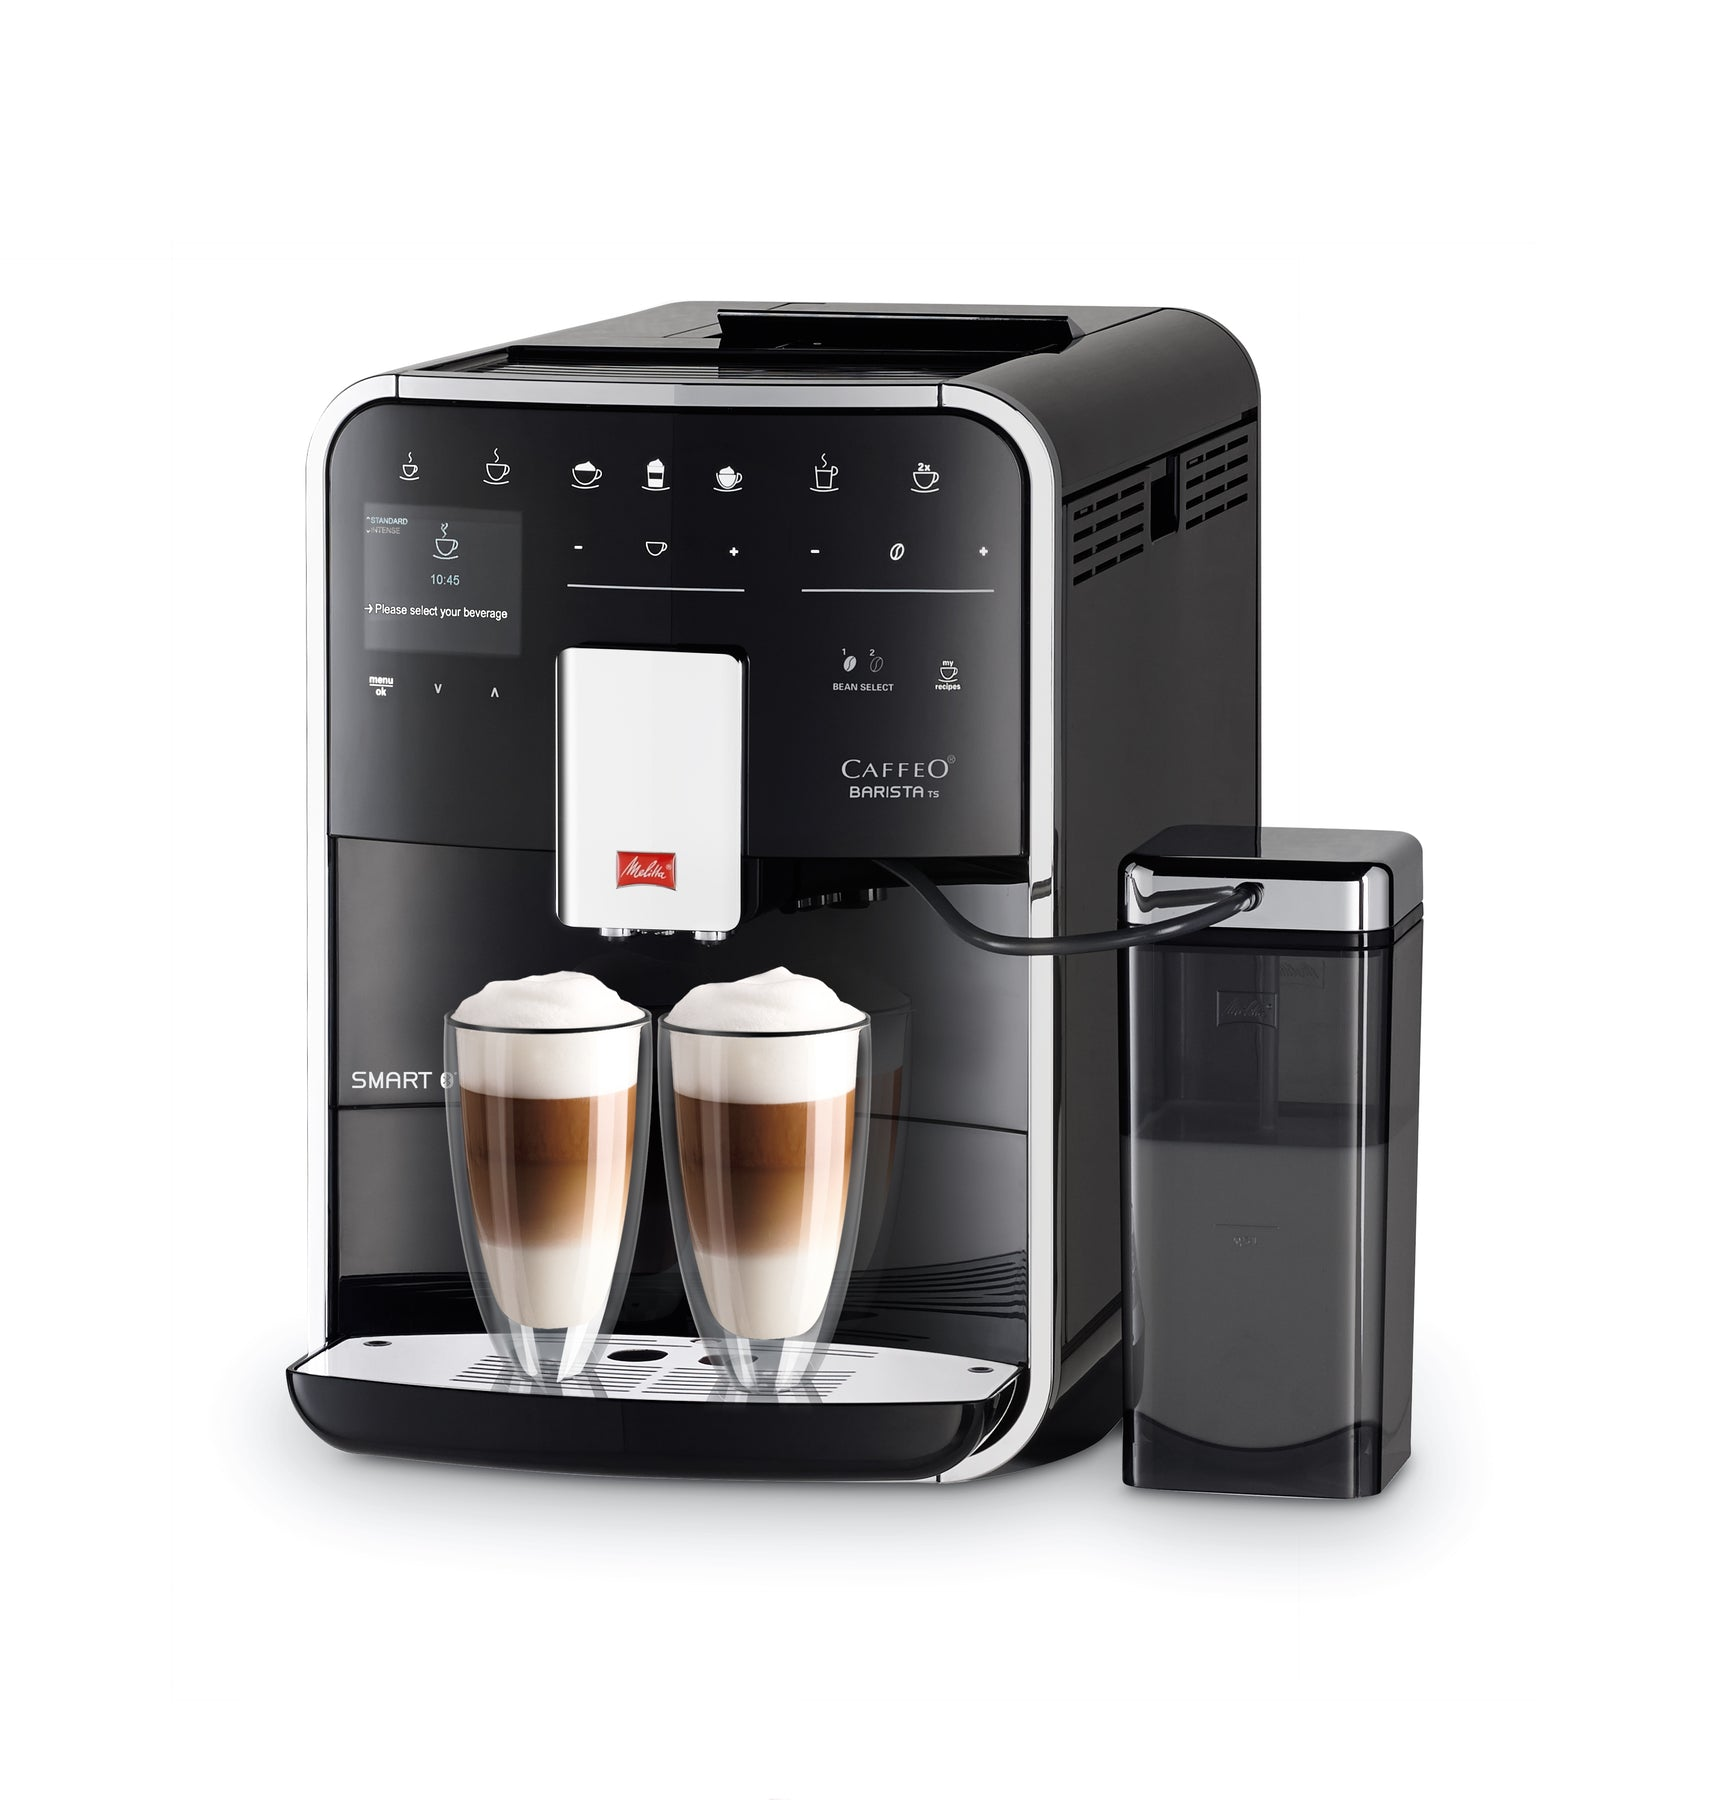 Melitta Barista Ts Smart Bean To Cup Coffee Machine Black With Free Annual Coffee Subscription